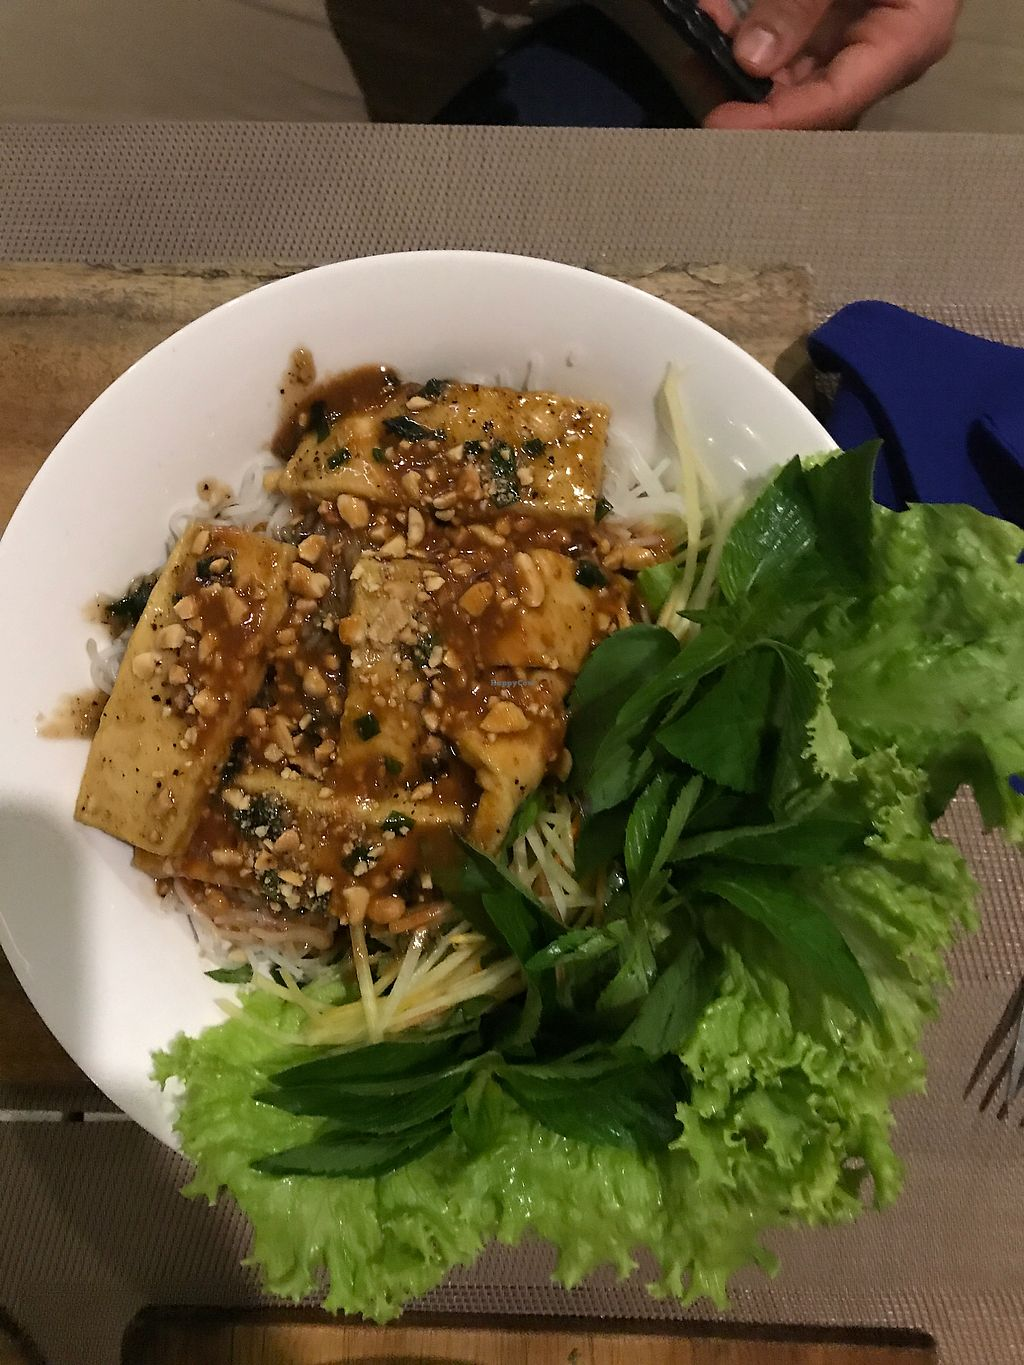 """Photo of Mai Jo Fusion  by <a href=""""/members/profile/Milipili"""">Milipili</a> <br/>Caramellized Tofu with ricenoodle salad <br/> March 4, 2018  - <a href='/contact/abuse/image/106890/366675'>Report</a>"""